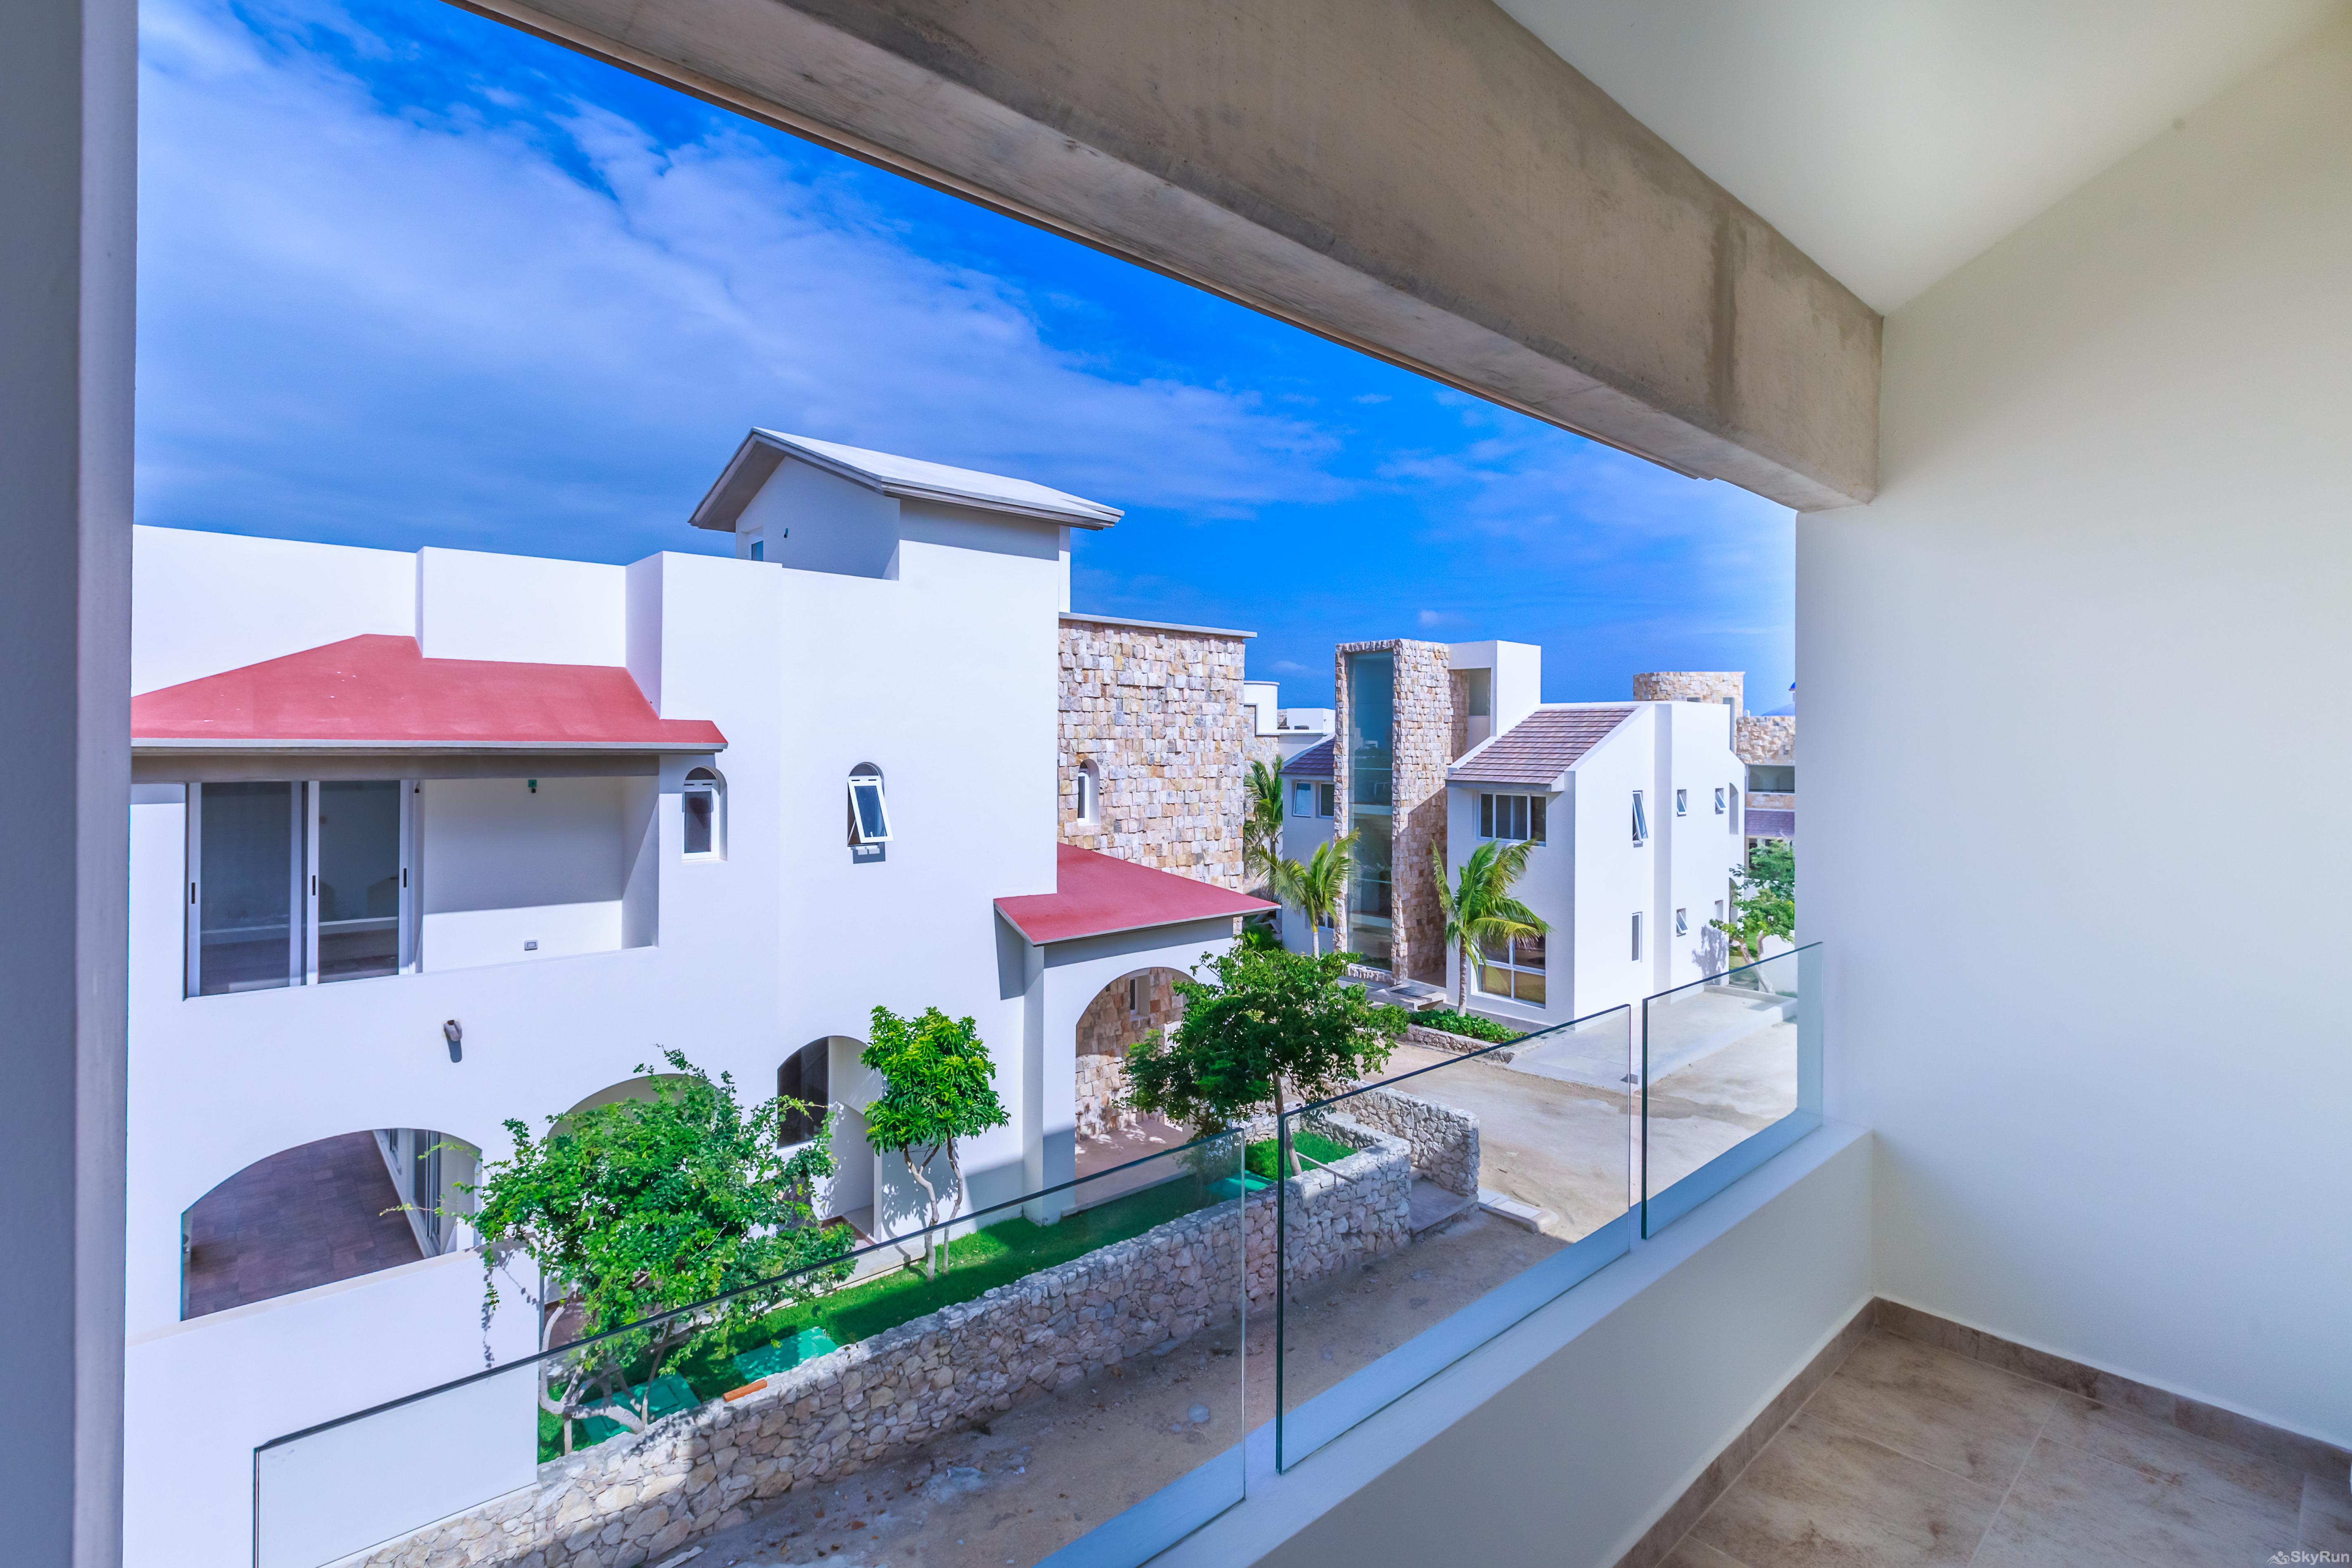 Casa Isla Bella Isla Mujeres Bedrooms with great views of Isla Mujeres